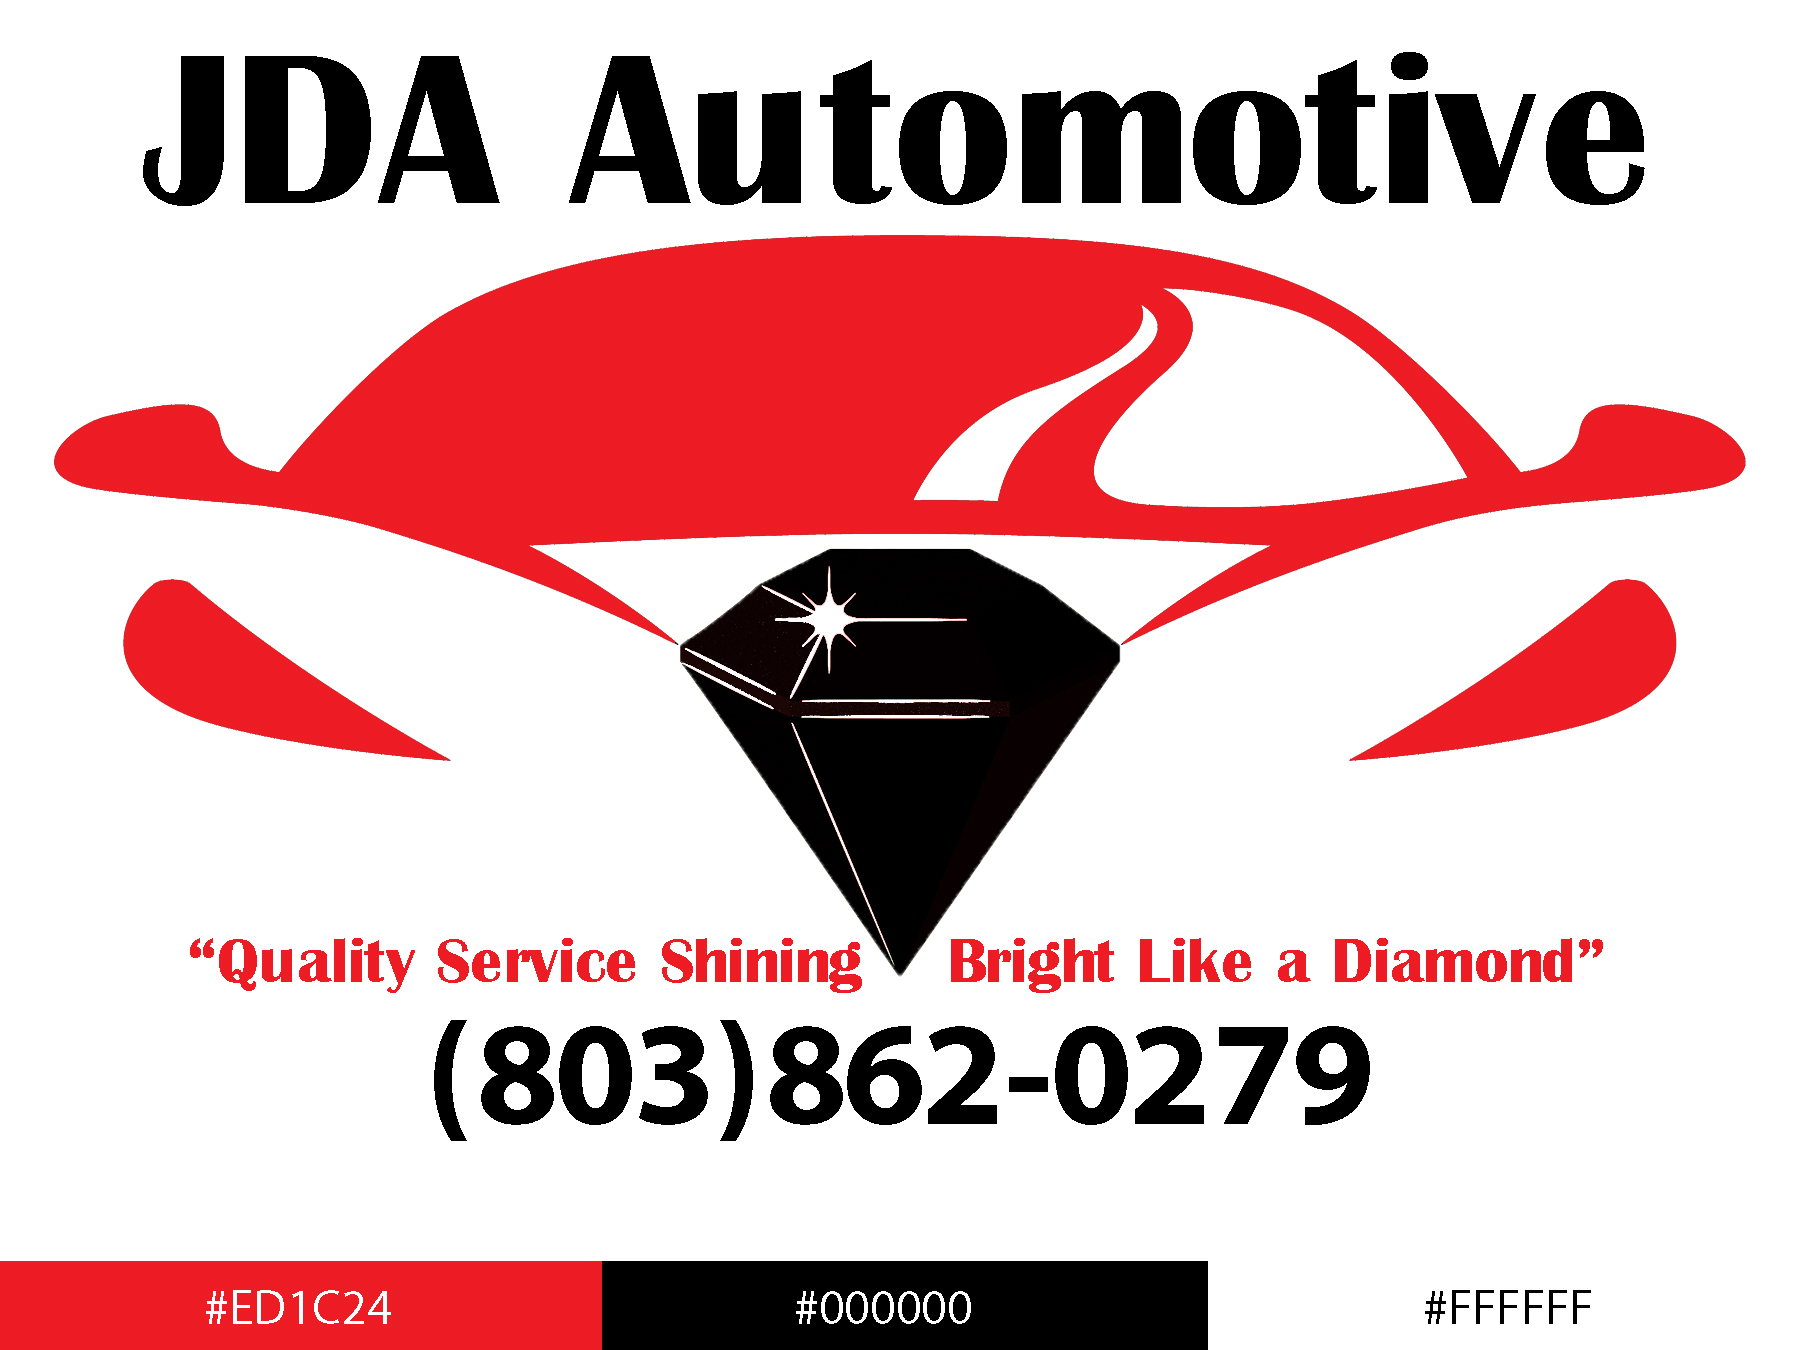 ORIGINAL-LOGO-COLORS-jda-auto-design